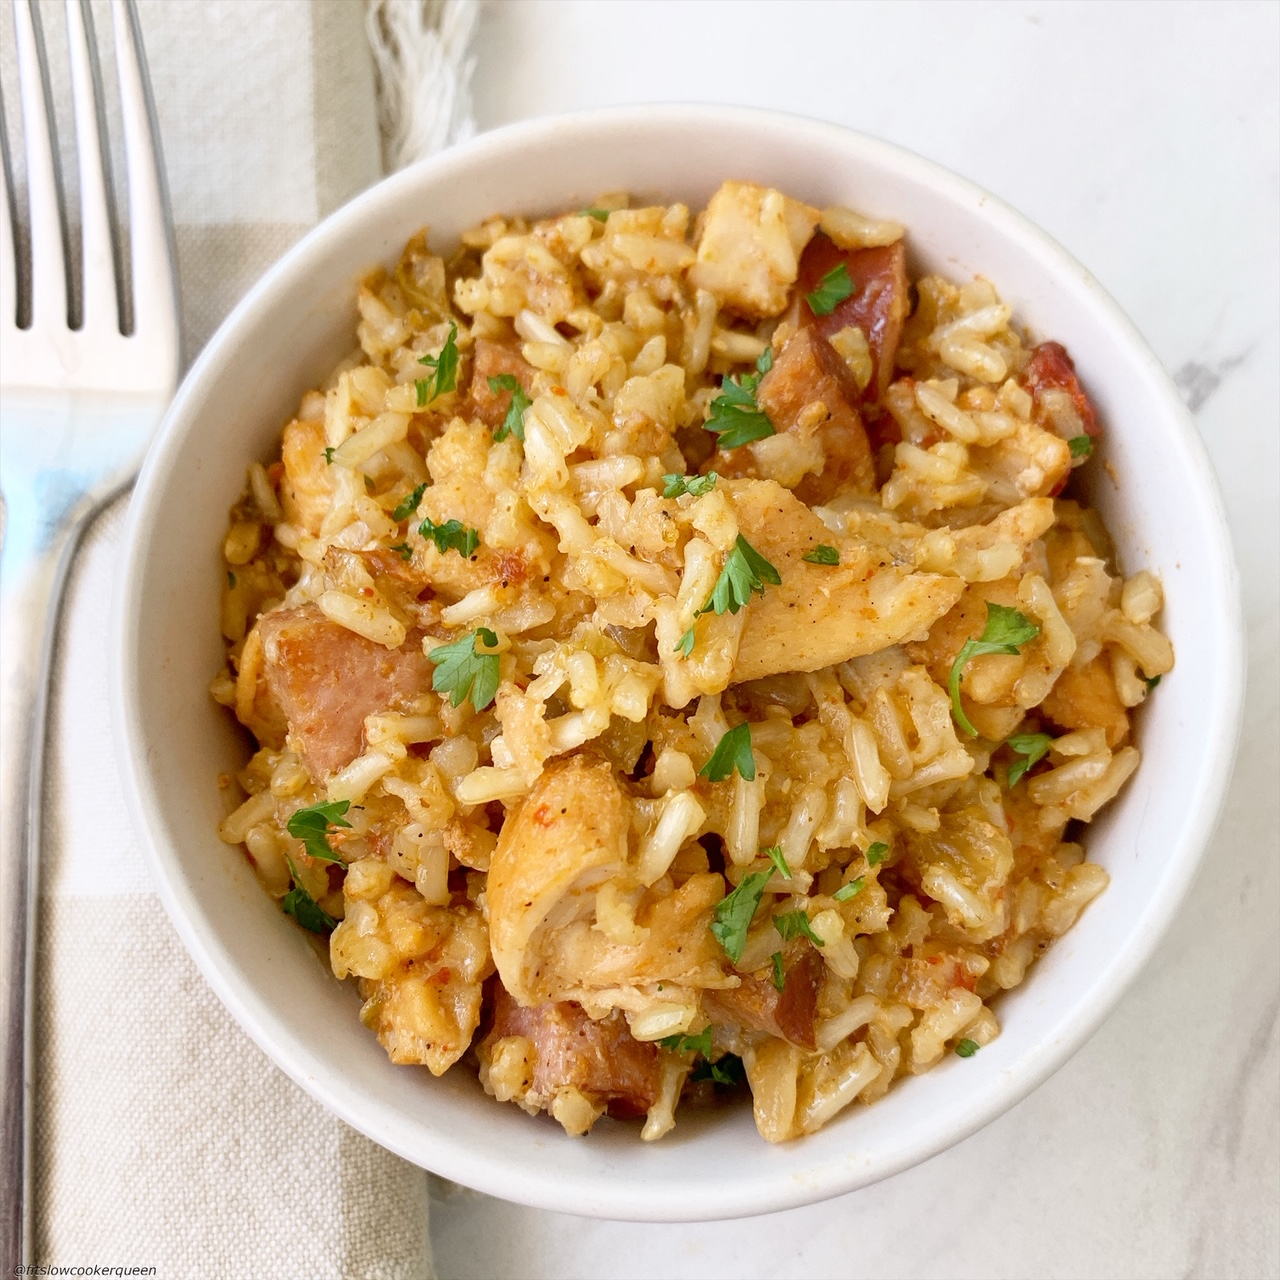 pic of plated cooked creole rice w/chicken & sausage in a bowl